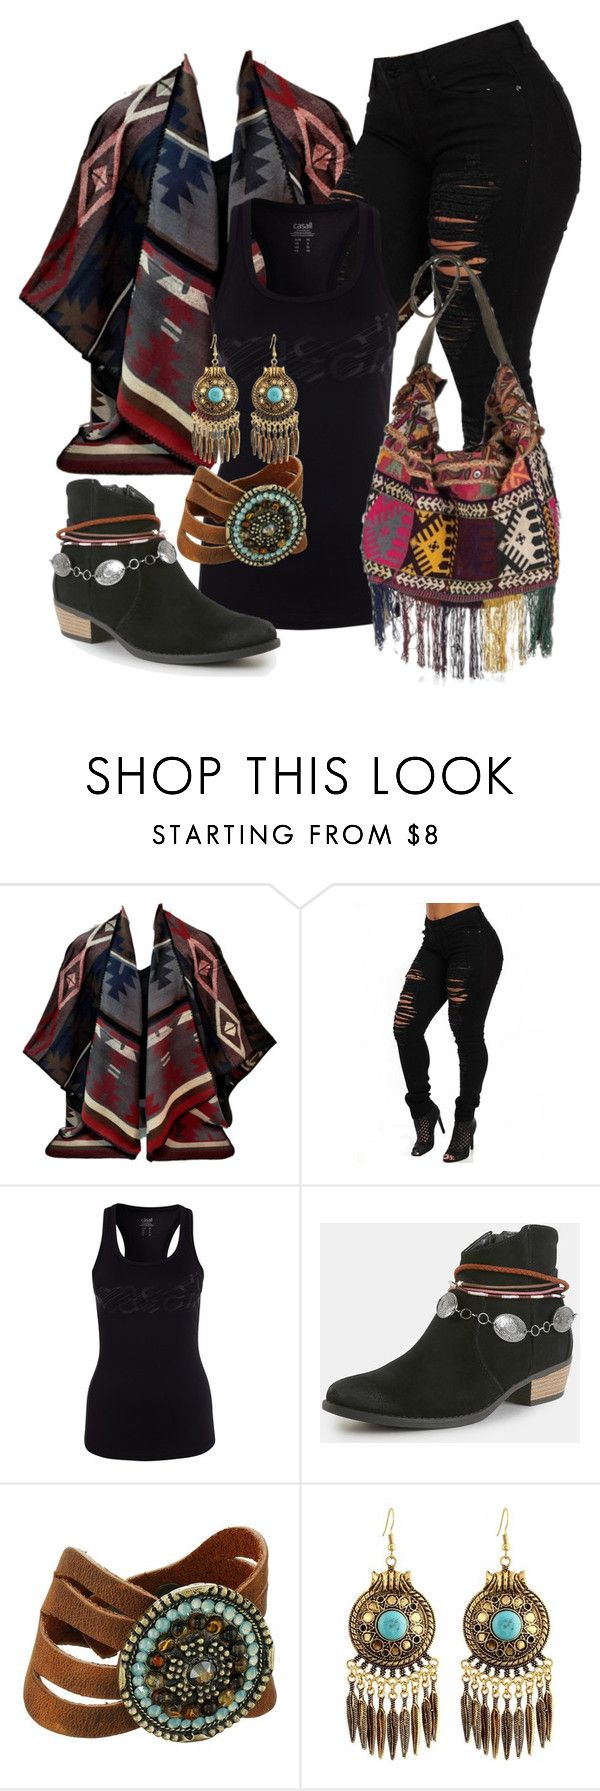 """Boémio"" by alice-fortuna ❤ liked on Polyvore featuring Leatherock"